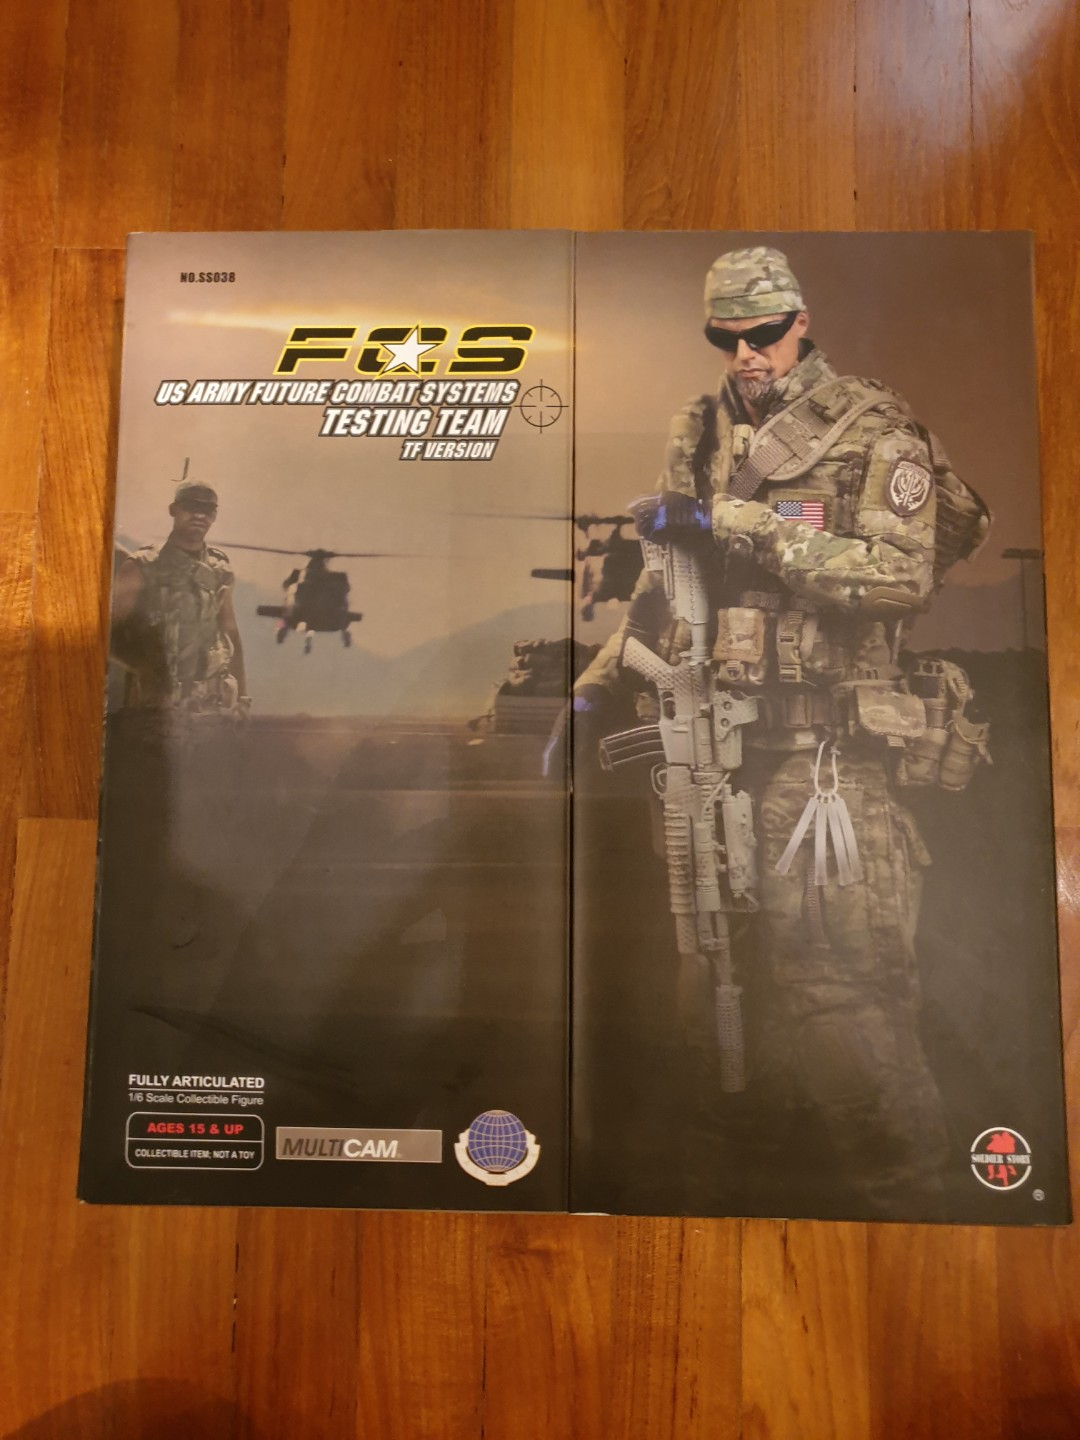 soldier story 1/6 us army future combat systems testing team tf version